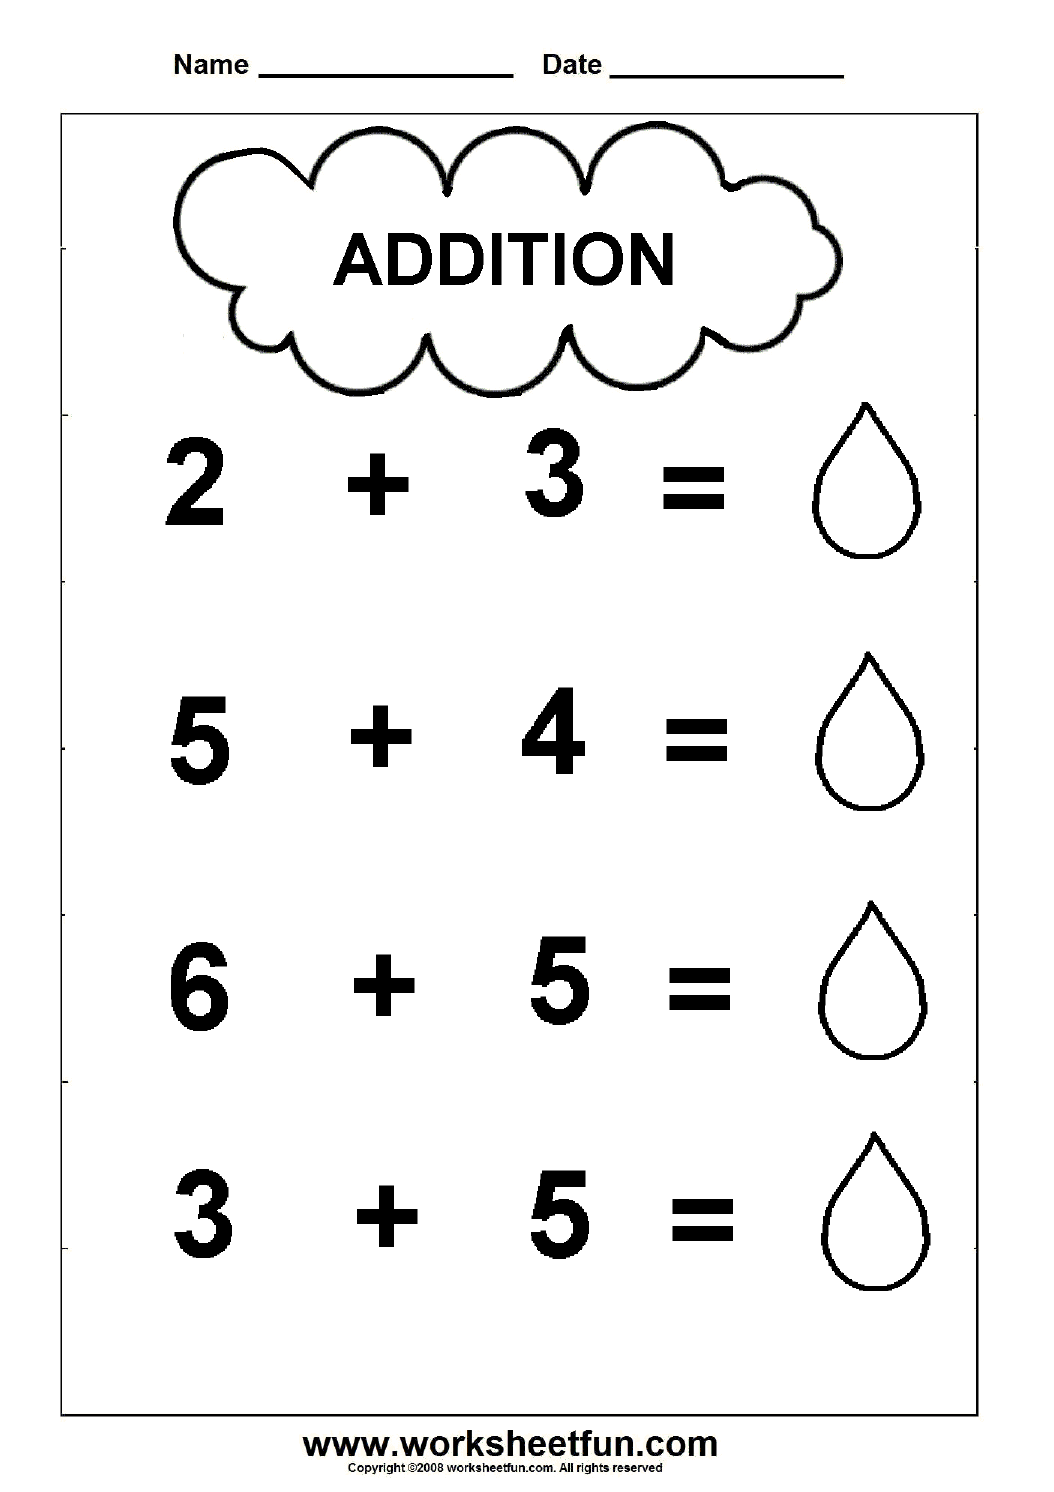 Addition - 2 Worksheets | Kindergarten Worksheets | Pinterest ...